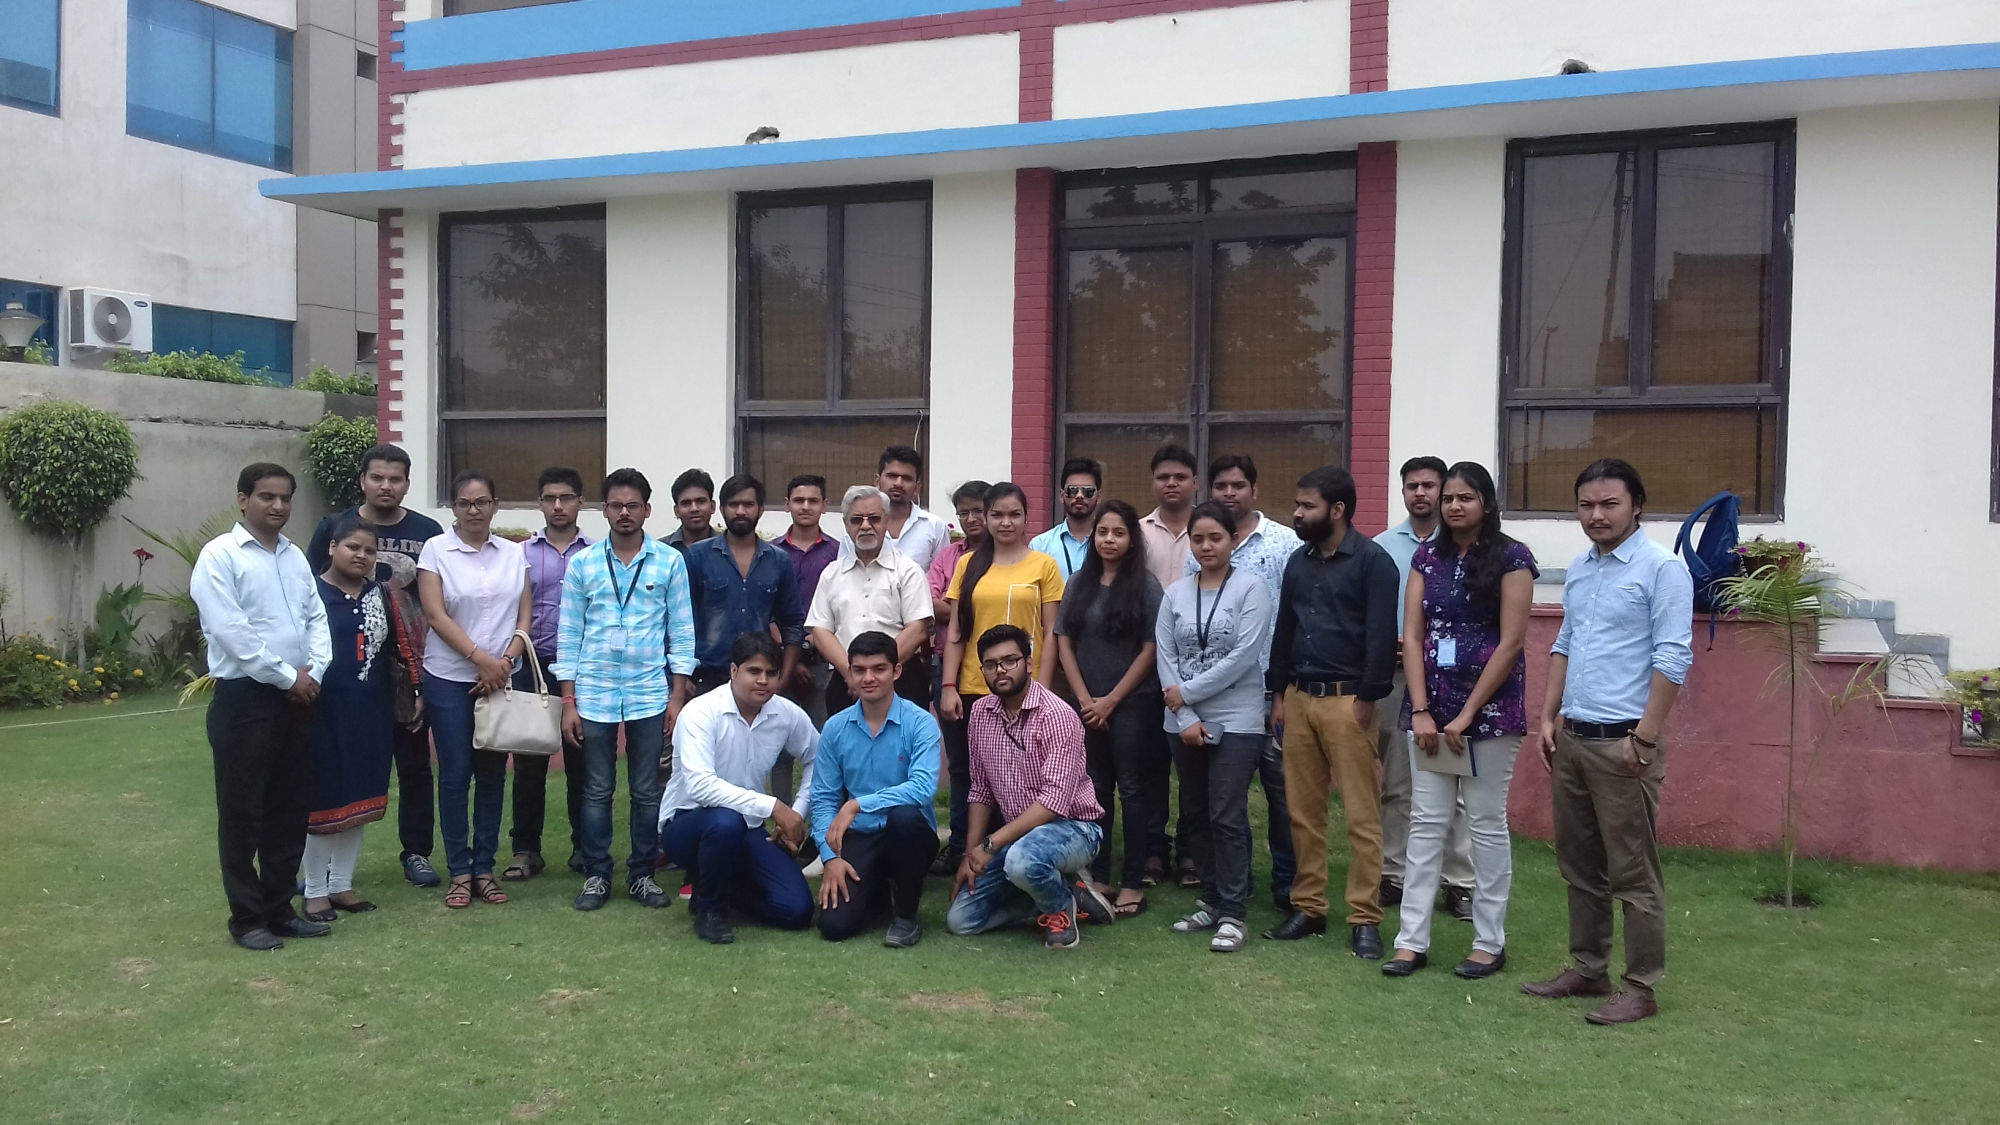 tata-institute-of-social-sciences-hub-aseed-greater-noida-noida-colleges-qax1cg